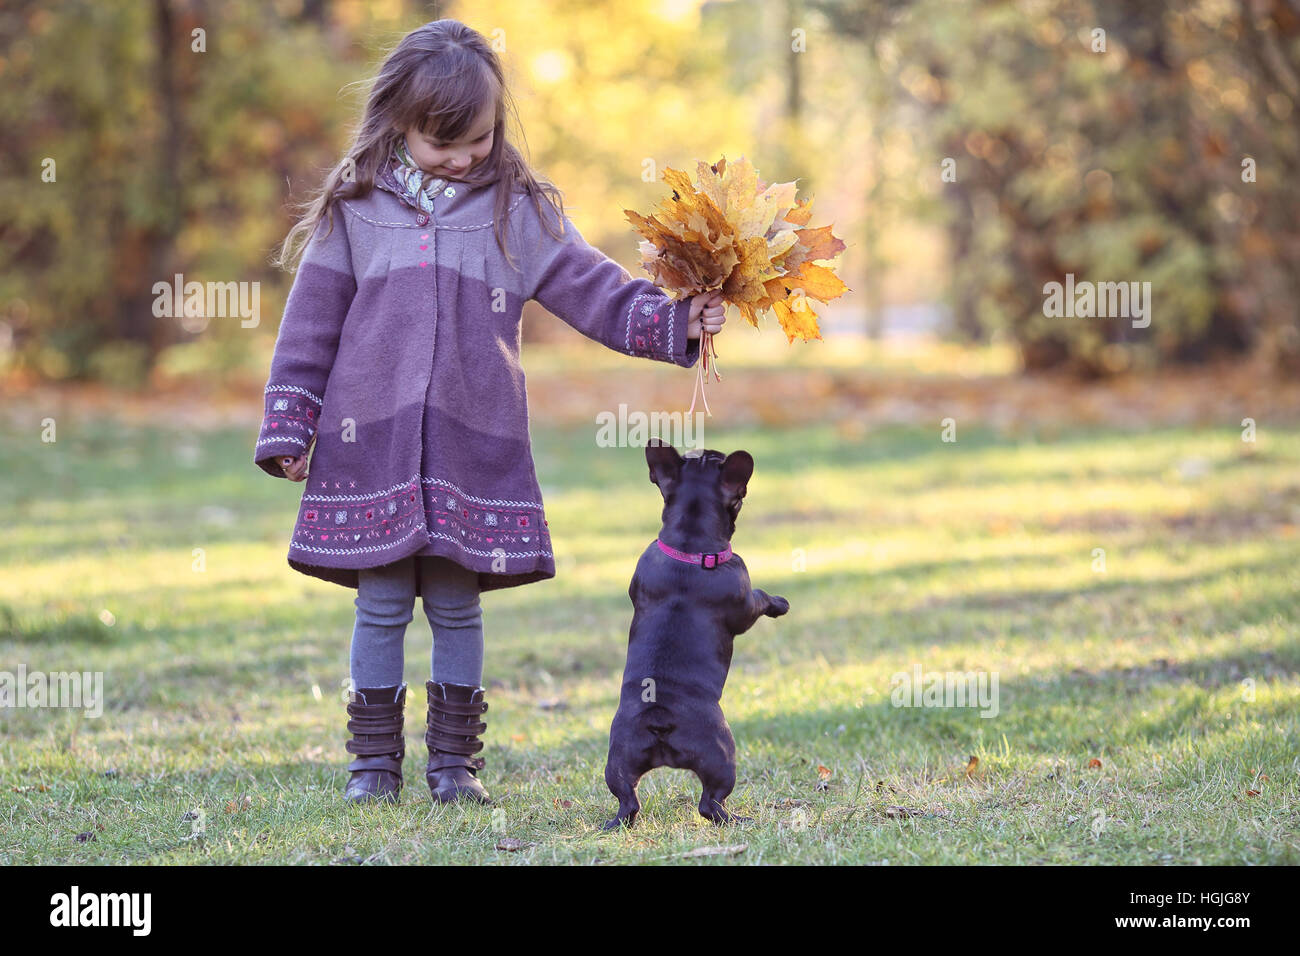 French bulldog with a little girl have fun - Stock Image